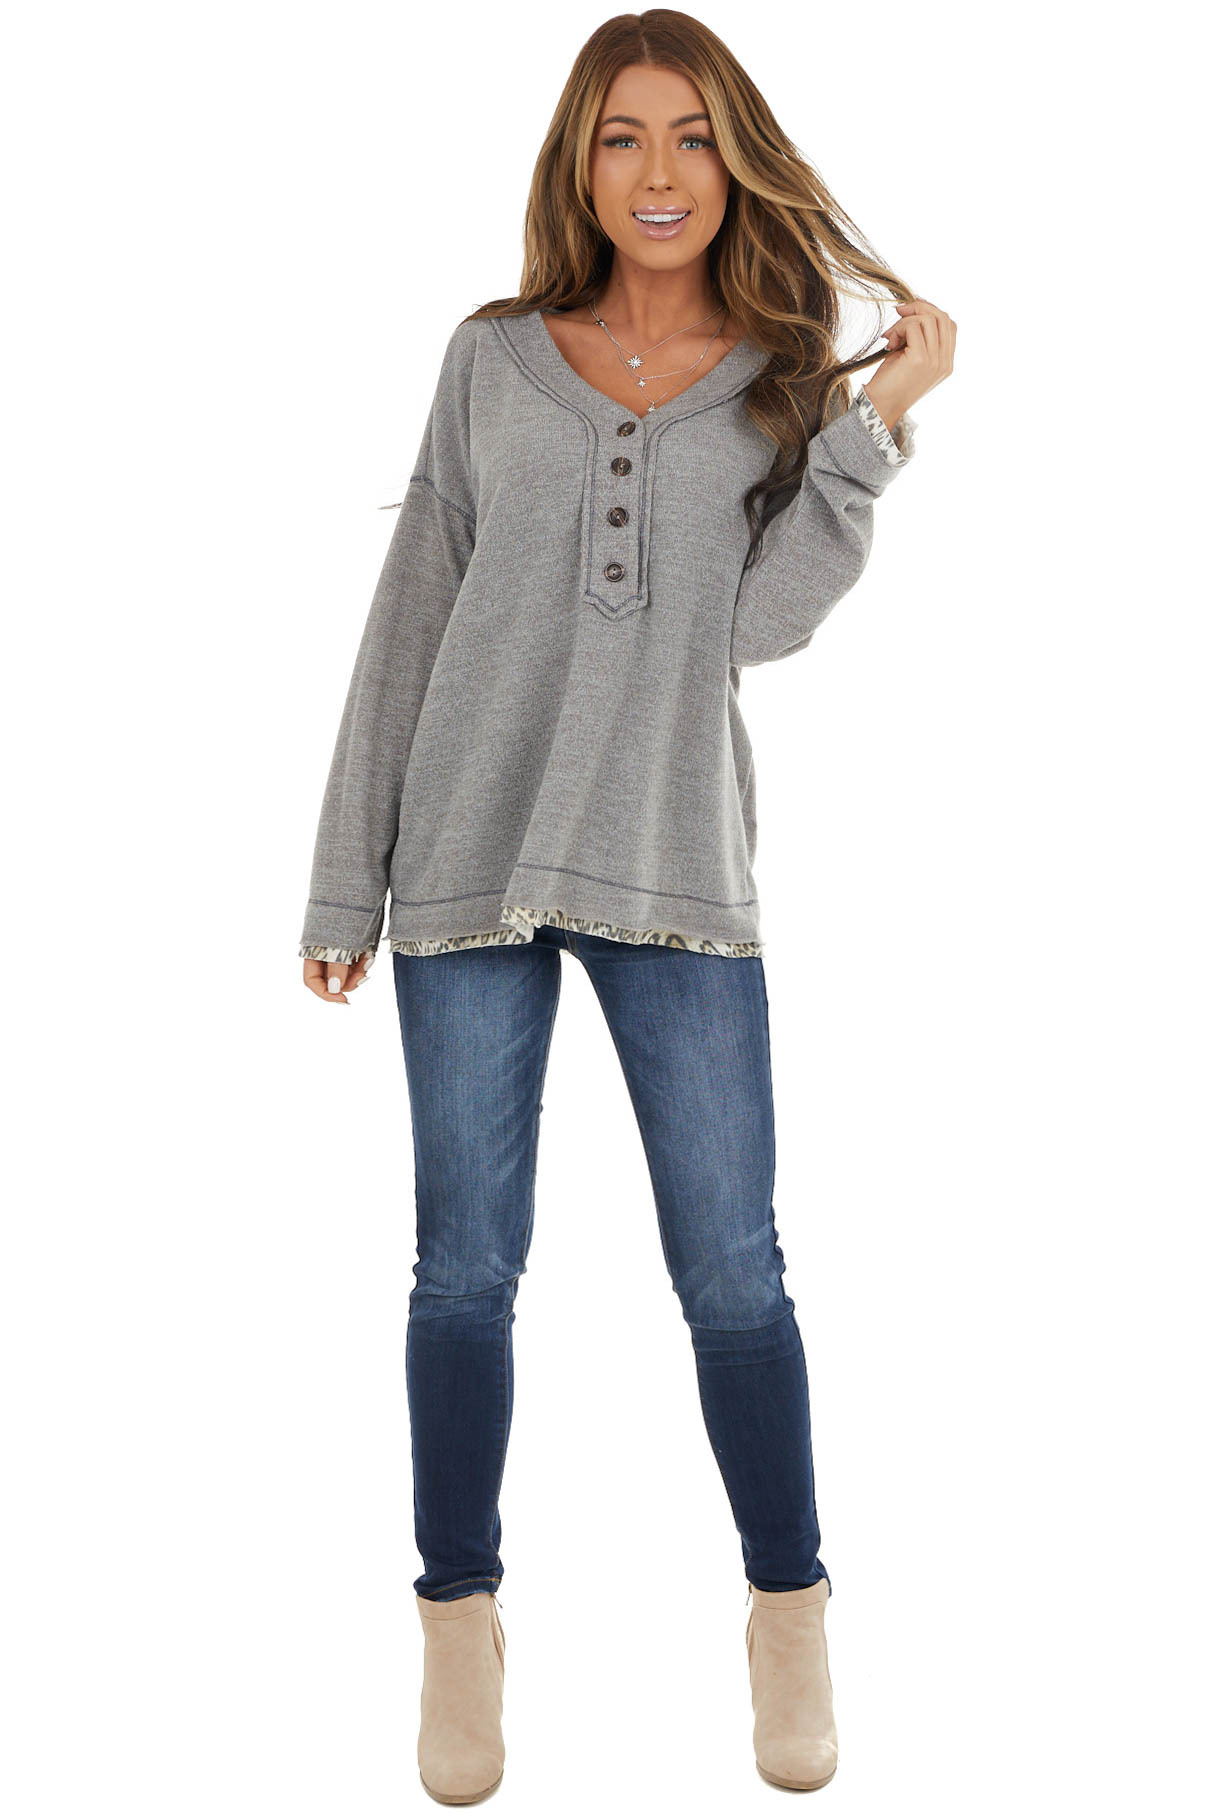 Stone Grey Long Sleeve Top with V Neck and Button Details